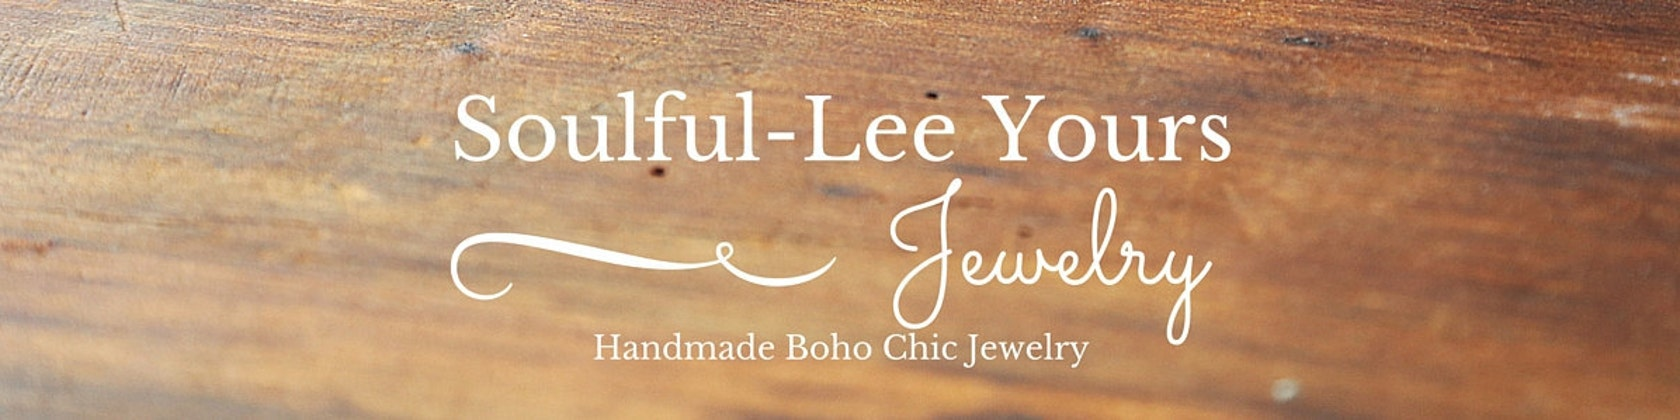 Soulful-Lee Yours Handcrafted Jewelry